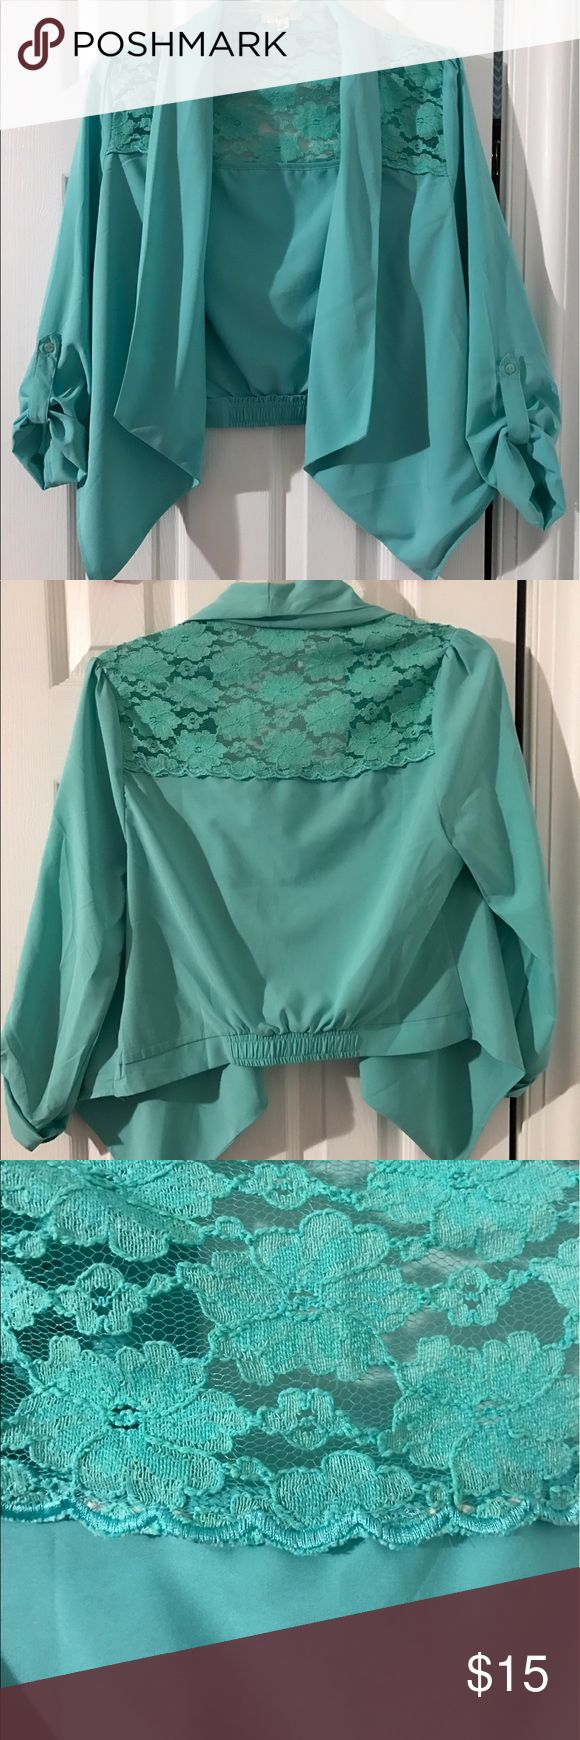 Turquoise Blazer Not actually Free People, just wrote that for the views. Turquoise silky blazer with lace details. Cropped length, rolled sleeves, elastic in back. Only worn once! Free People Jackets & Coats Blazers